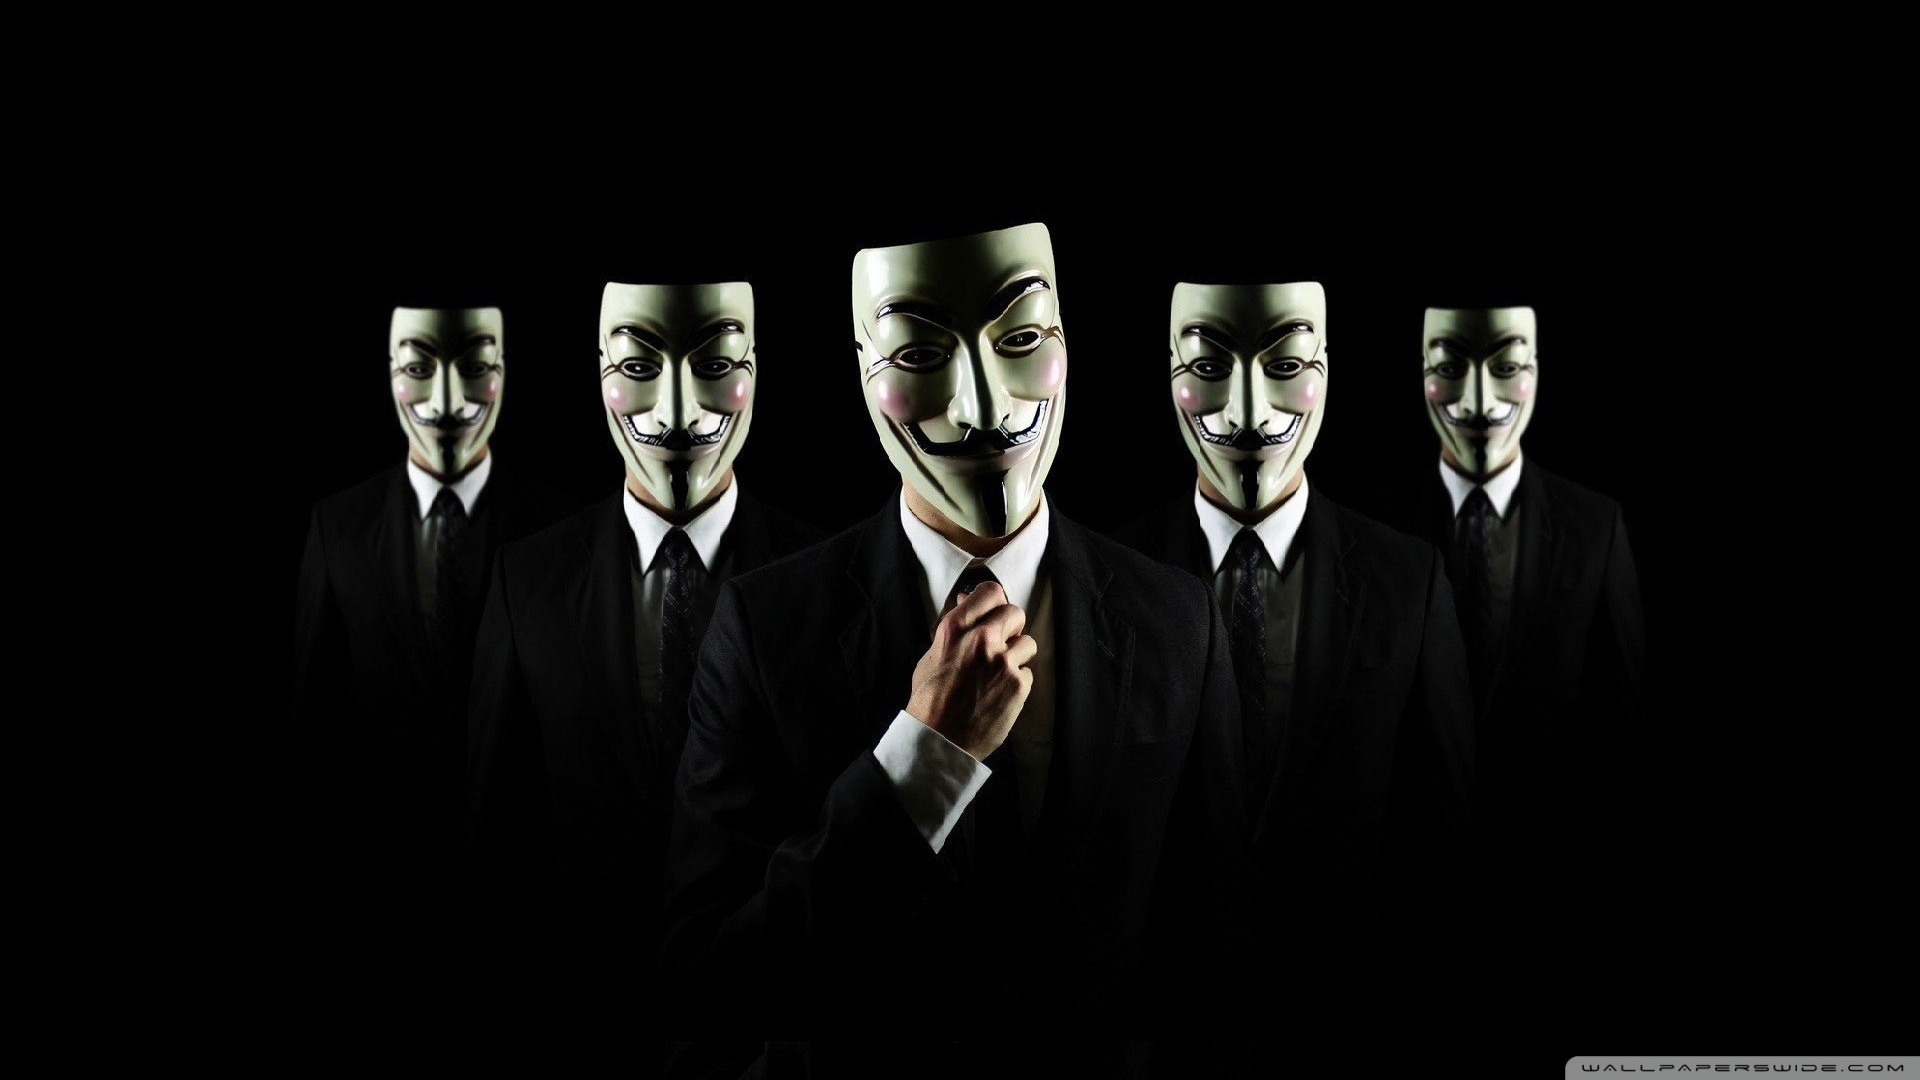 Anonymous wallpaper hd 1920x1080 - Anonymous wallpaper full hd ...